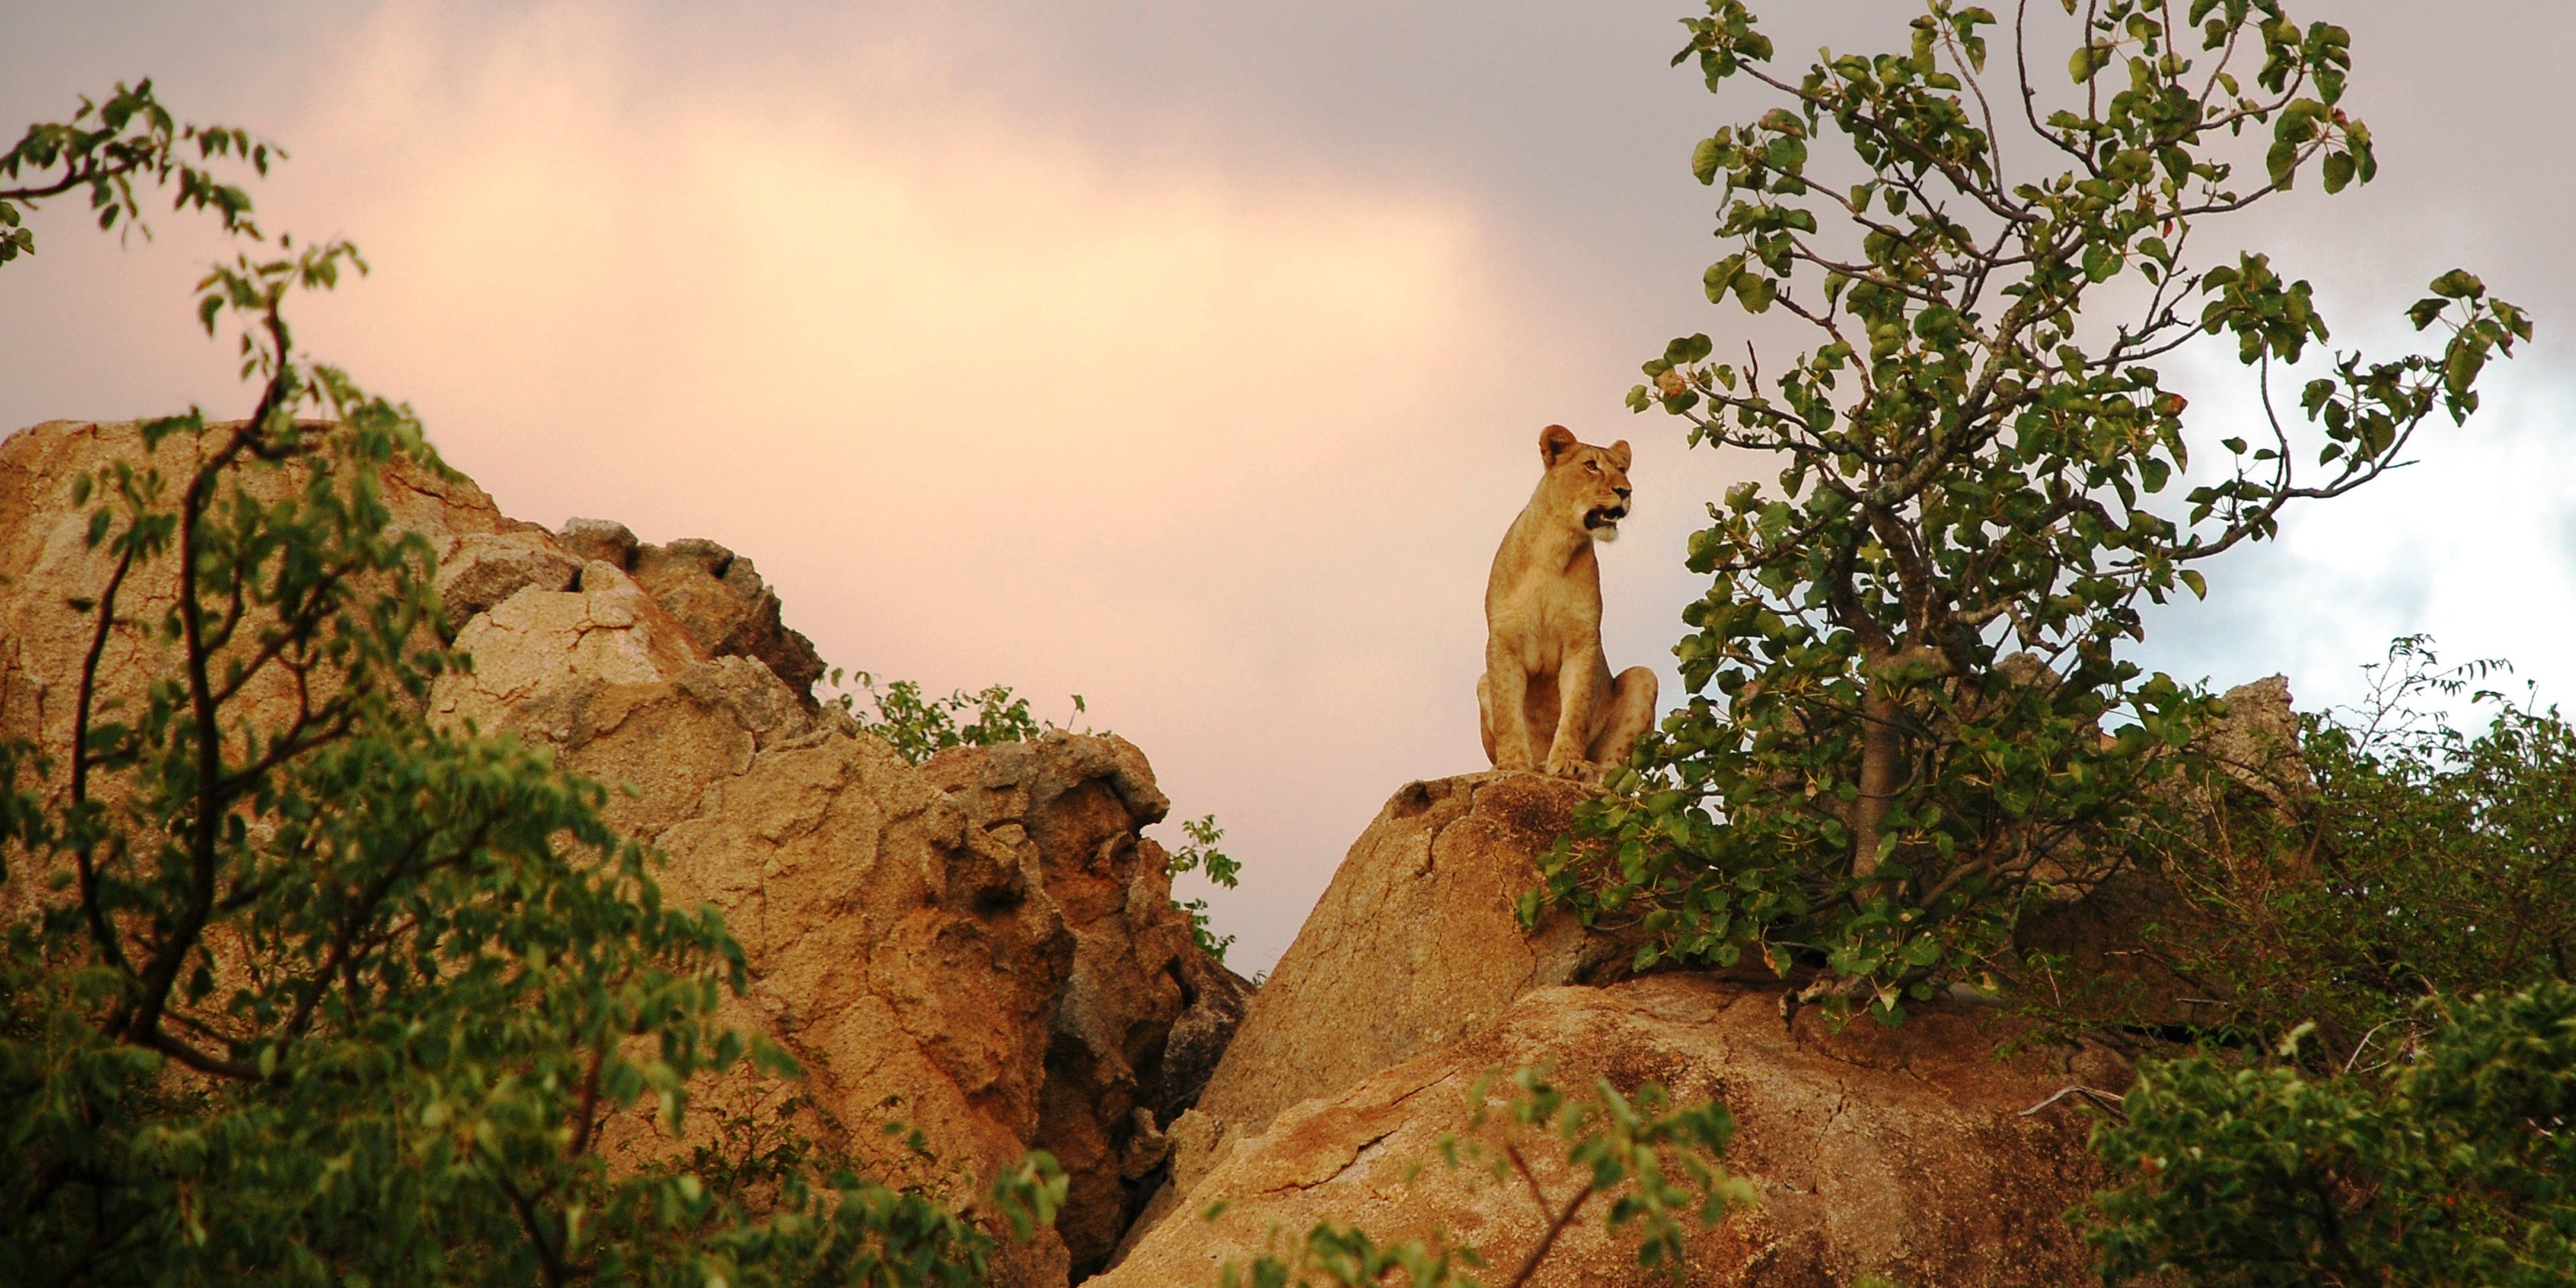 A lion surveys the bushveld from atop a rocky ridge. This lion is one of the big cats monitored as part of GVI's African wildlife conservation program.